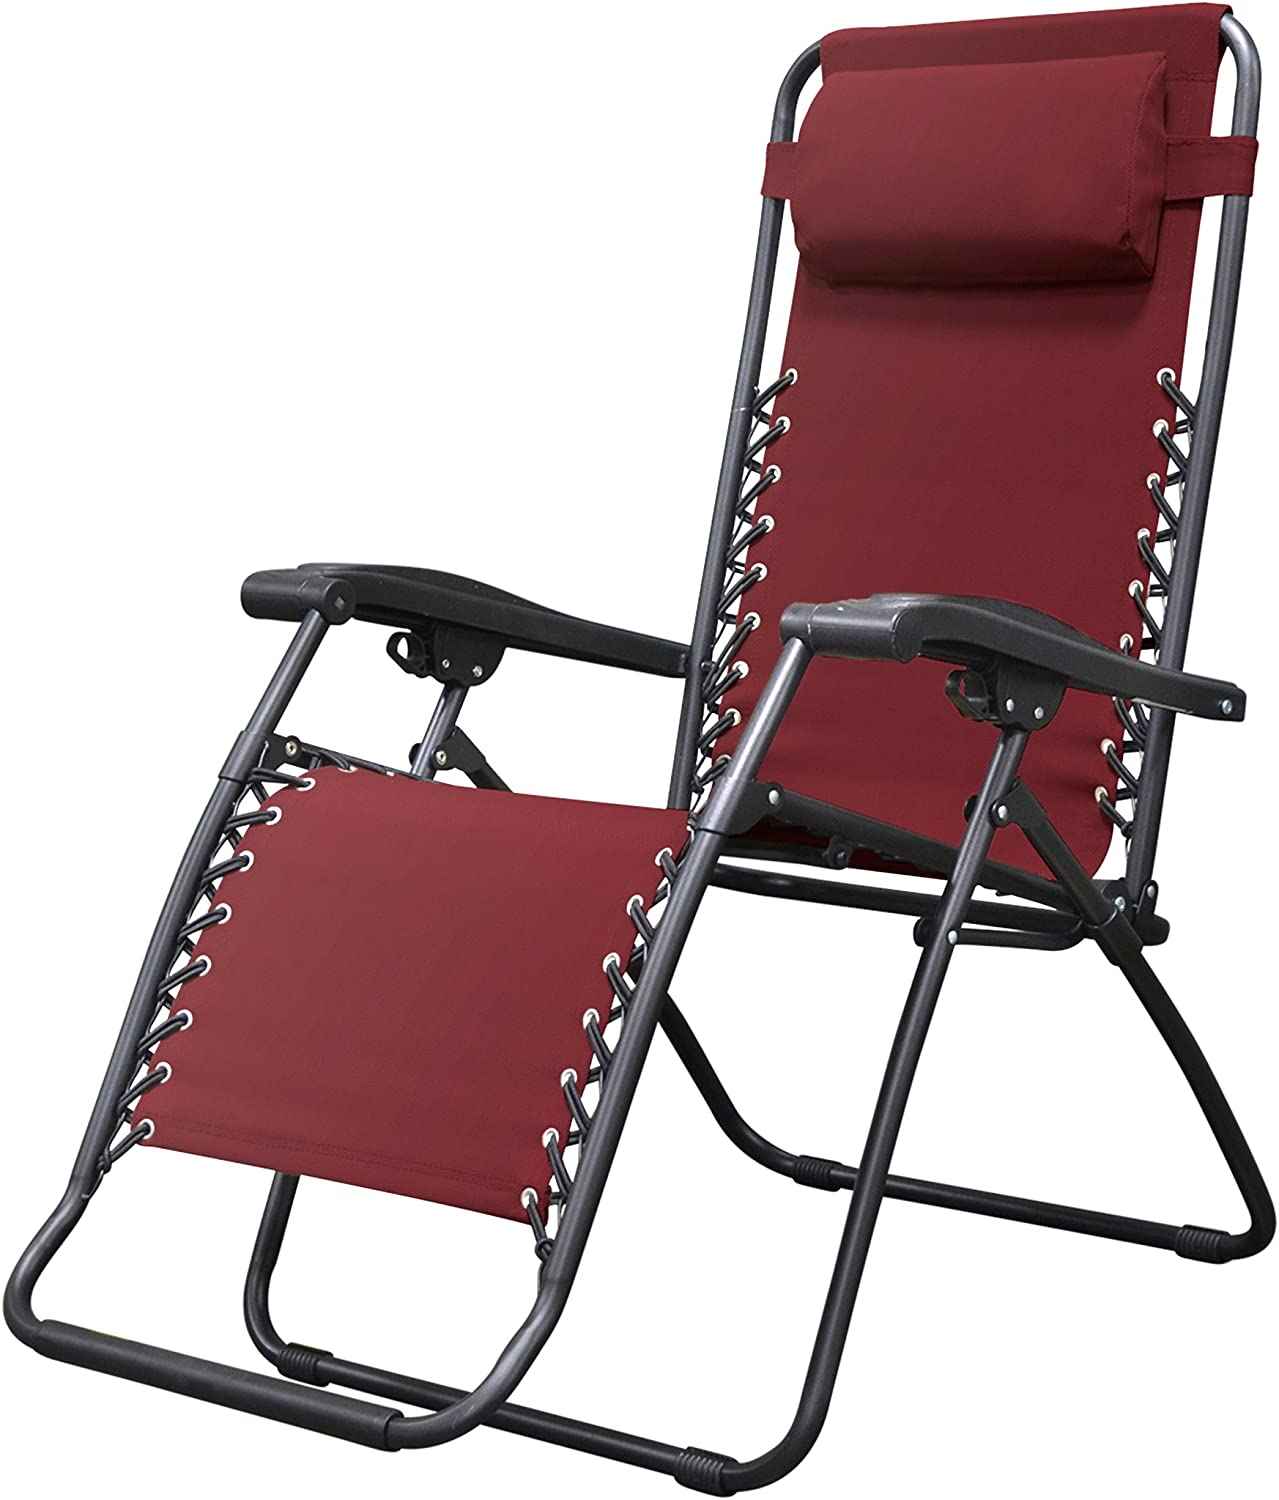 Caravan Canopy Sports Infinity Burgundy Zero Gravity Chair